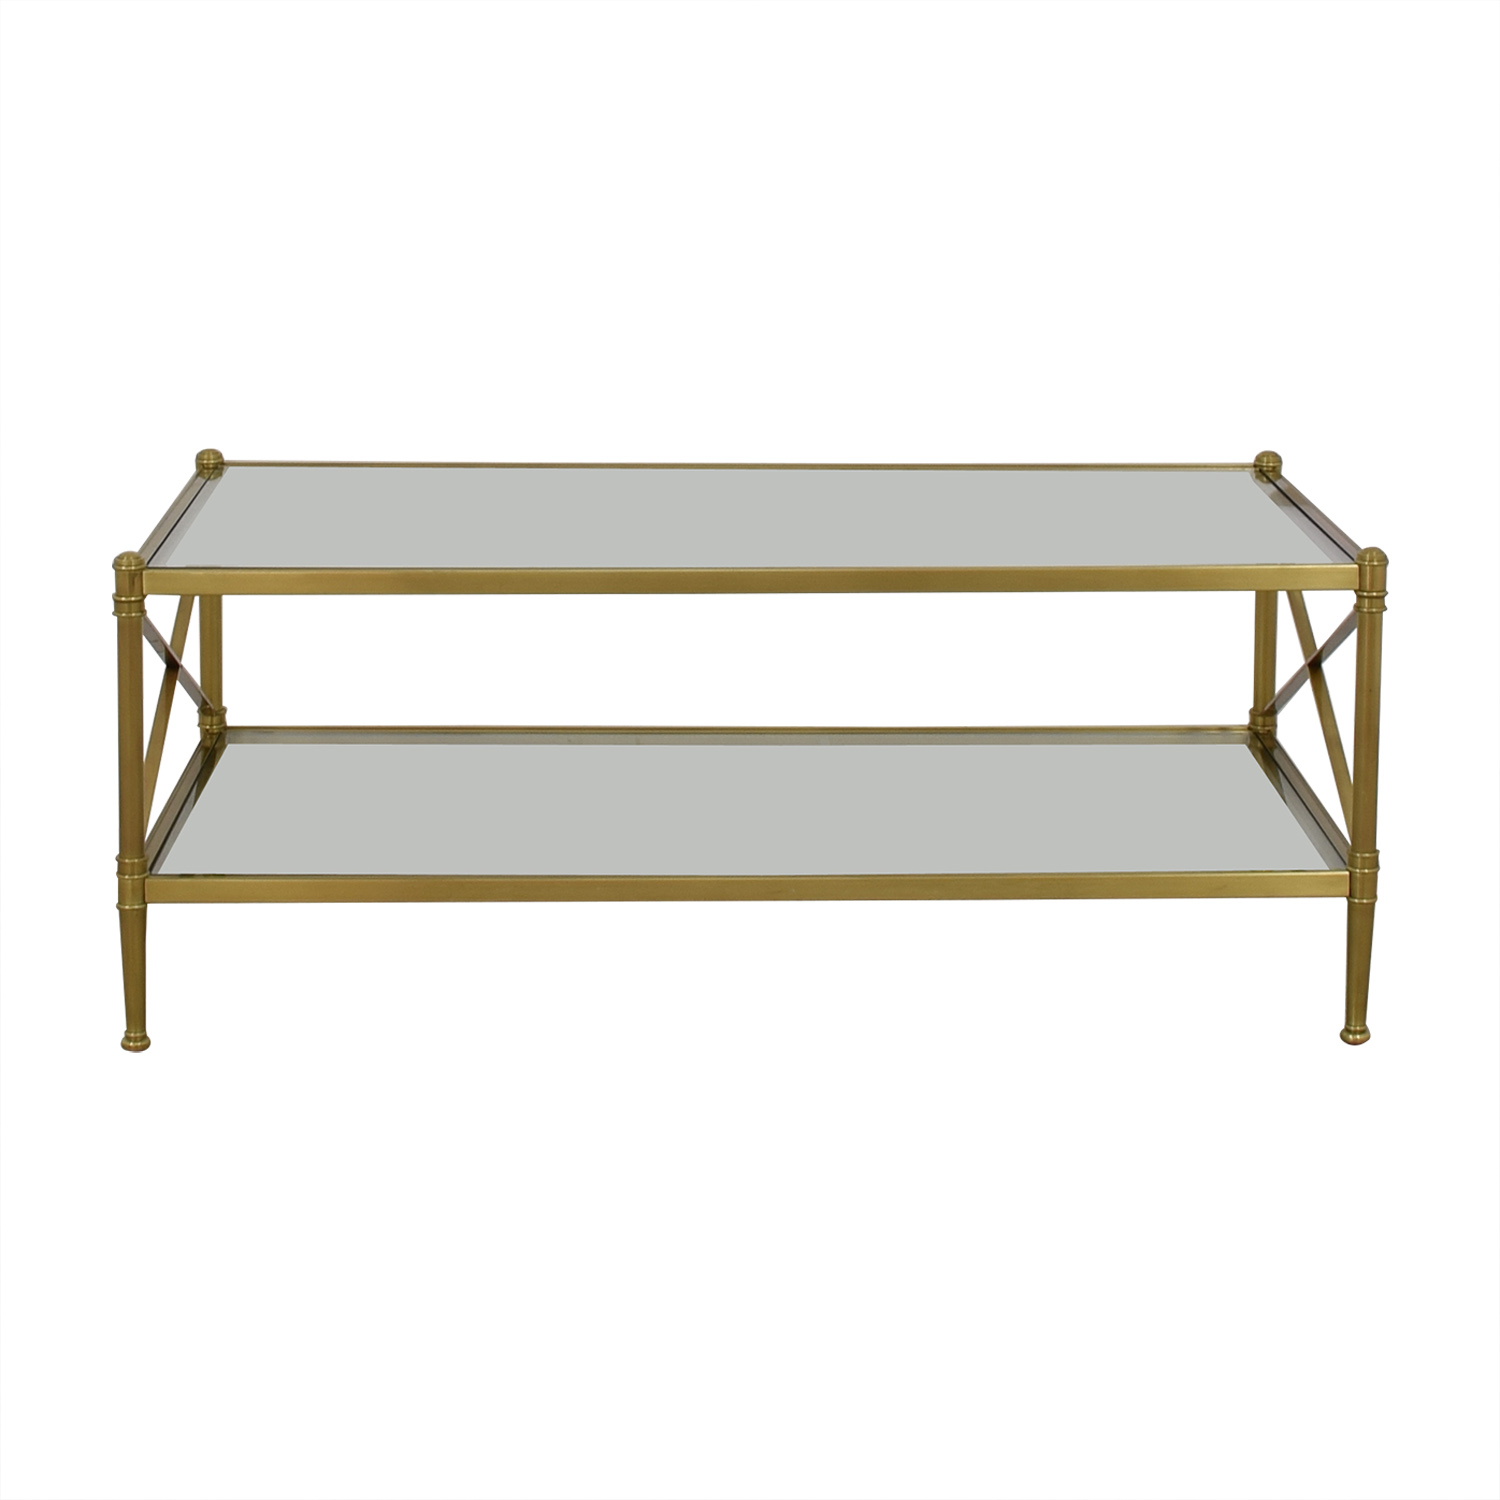 Restoration Hardware Restoration Hardware Glass and Gold Chrome Coffee Table nj